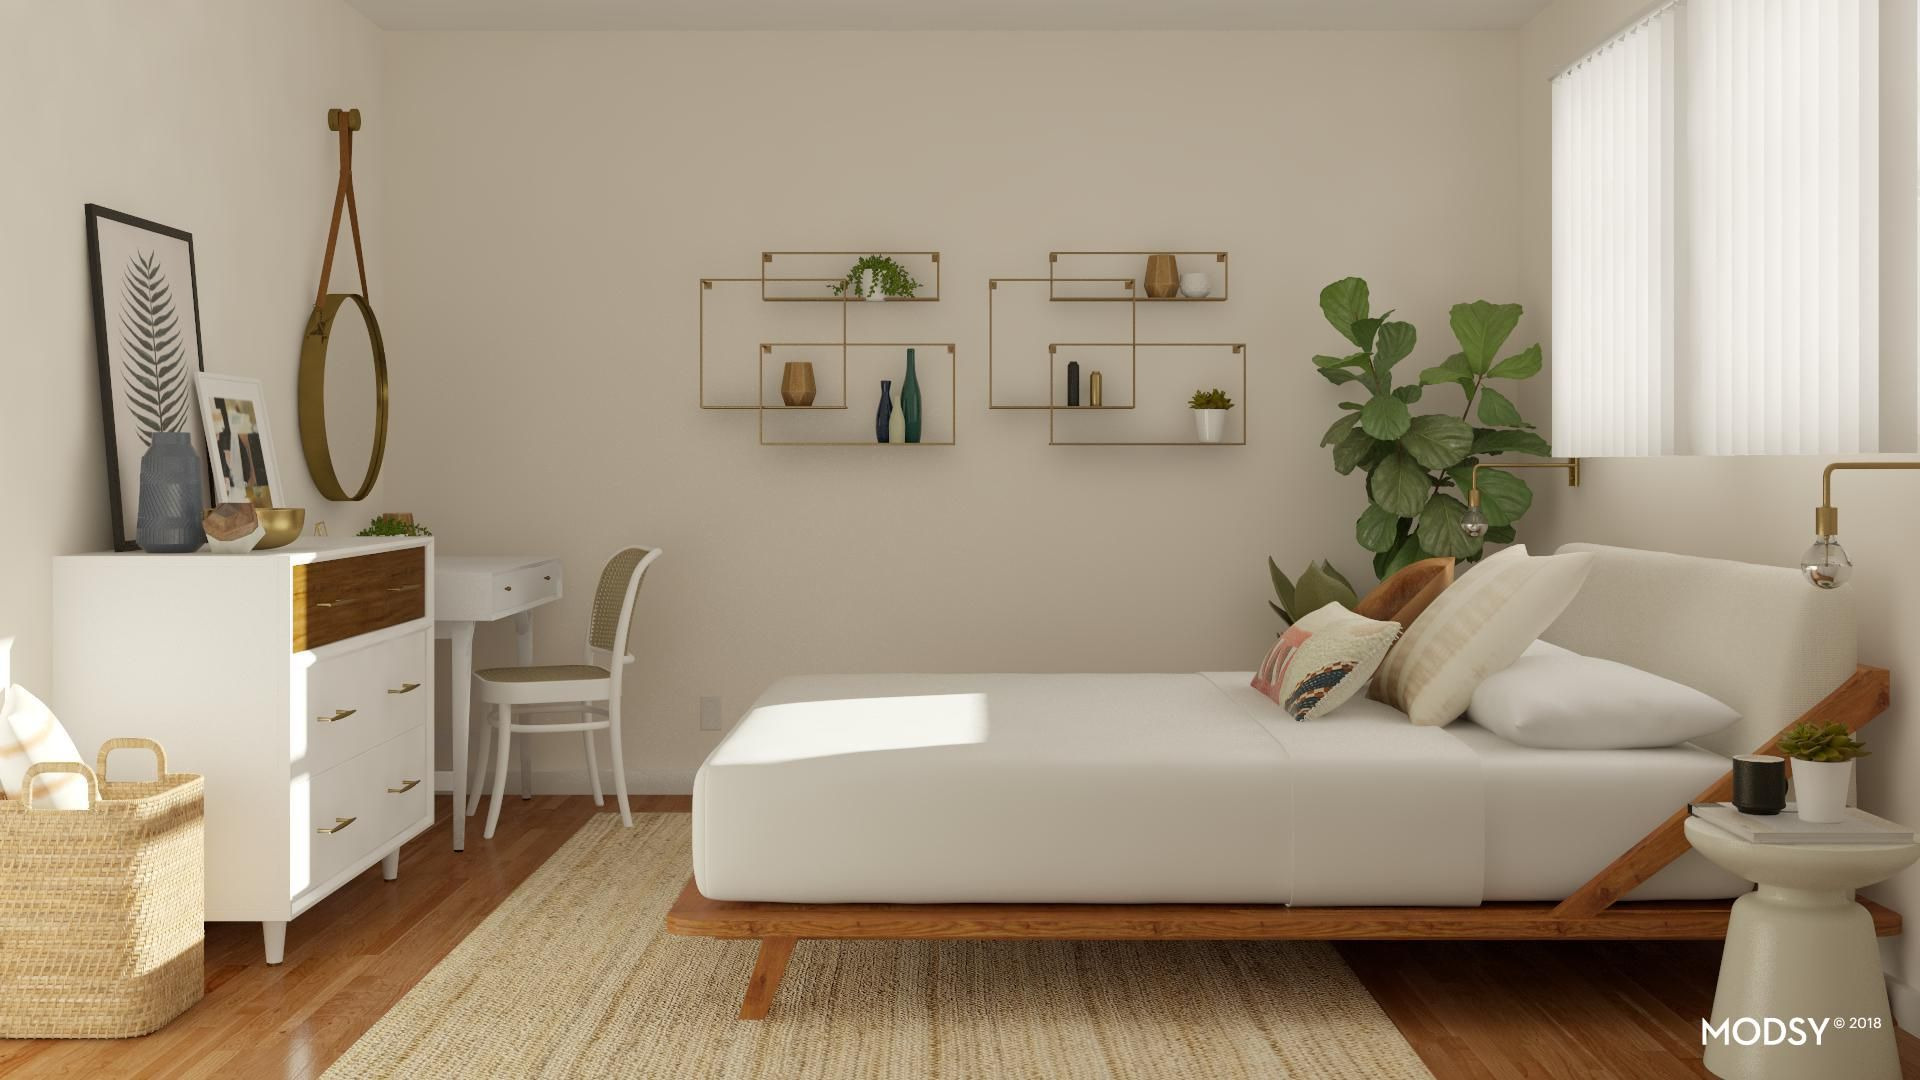 Review Modsy Virtual Bedroom Design Before After Jessoshii